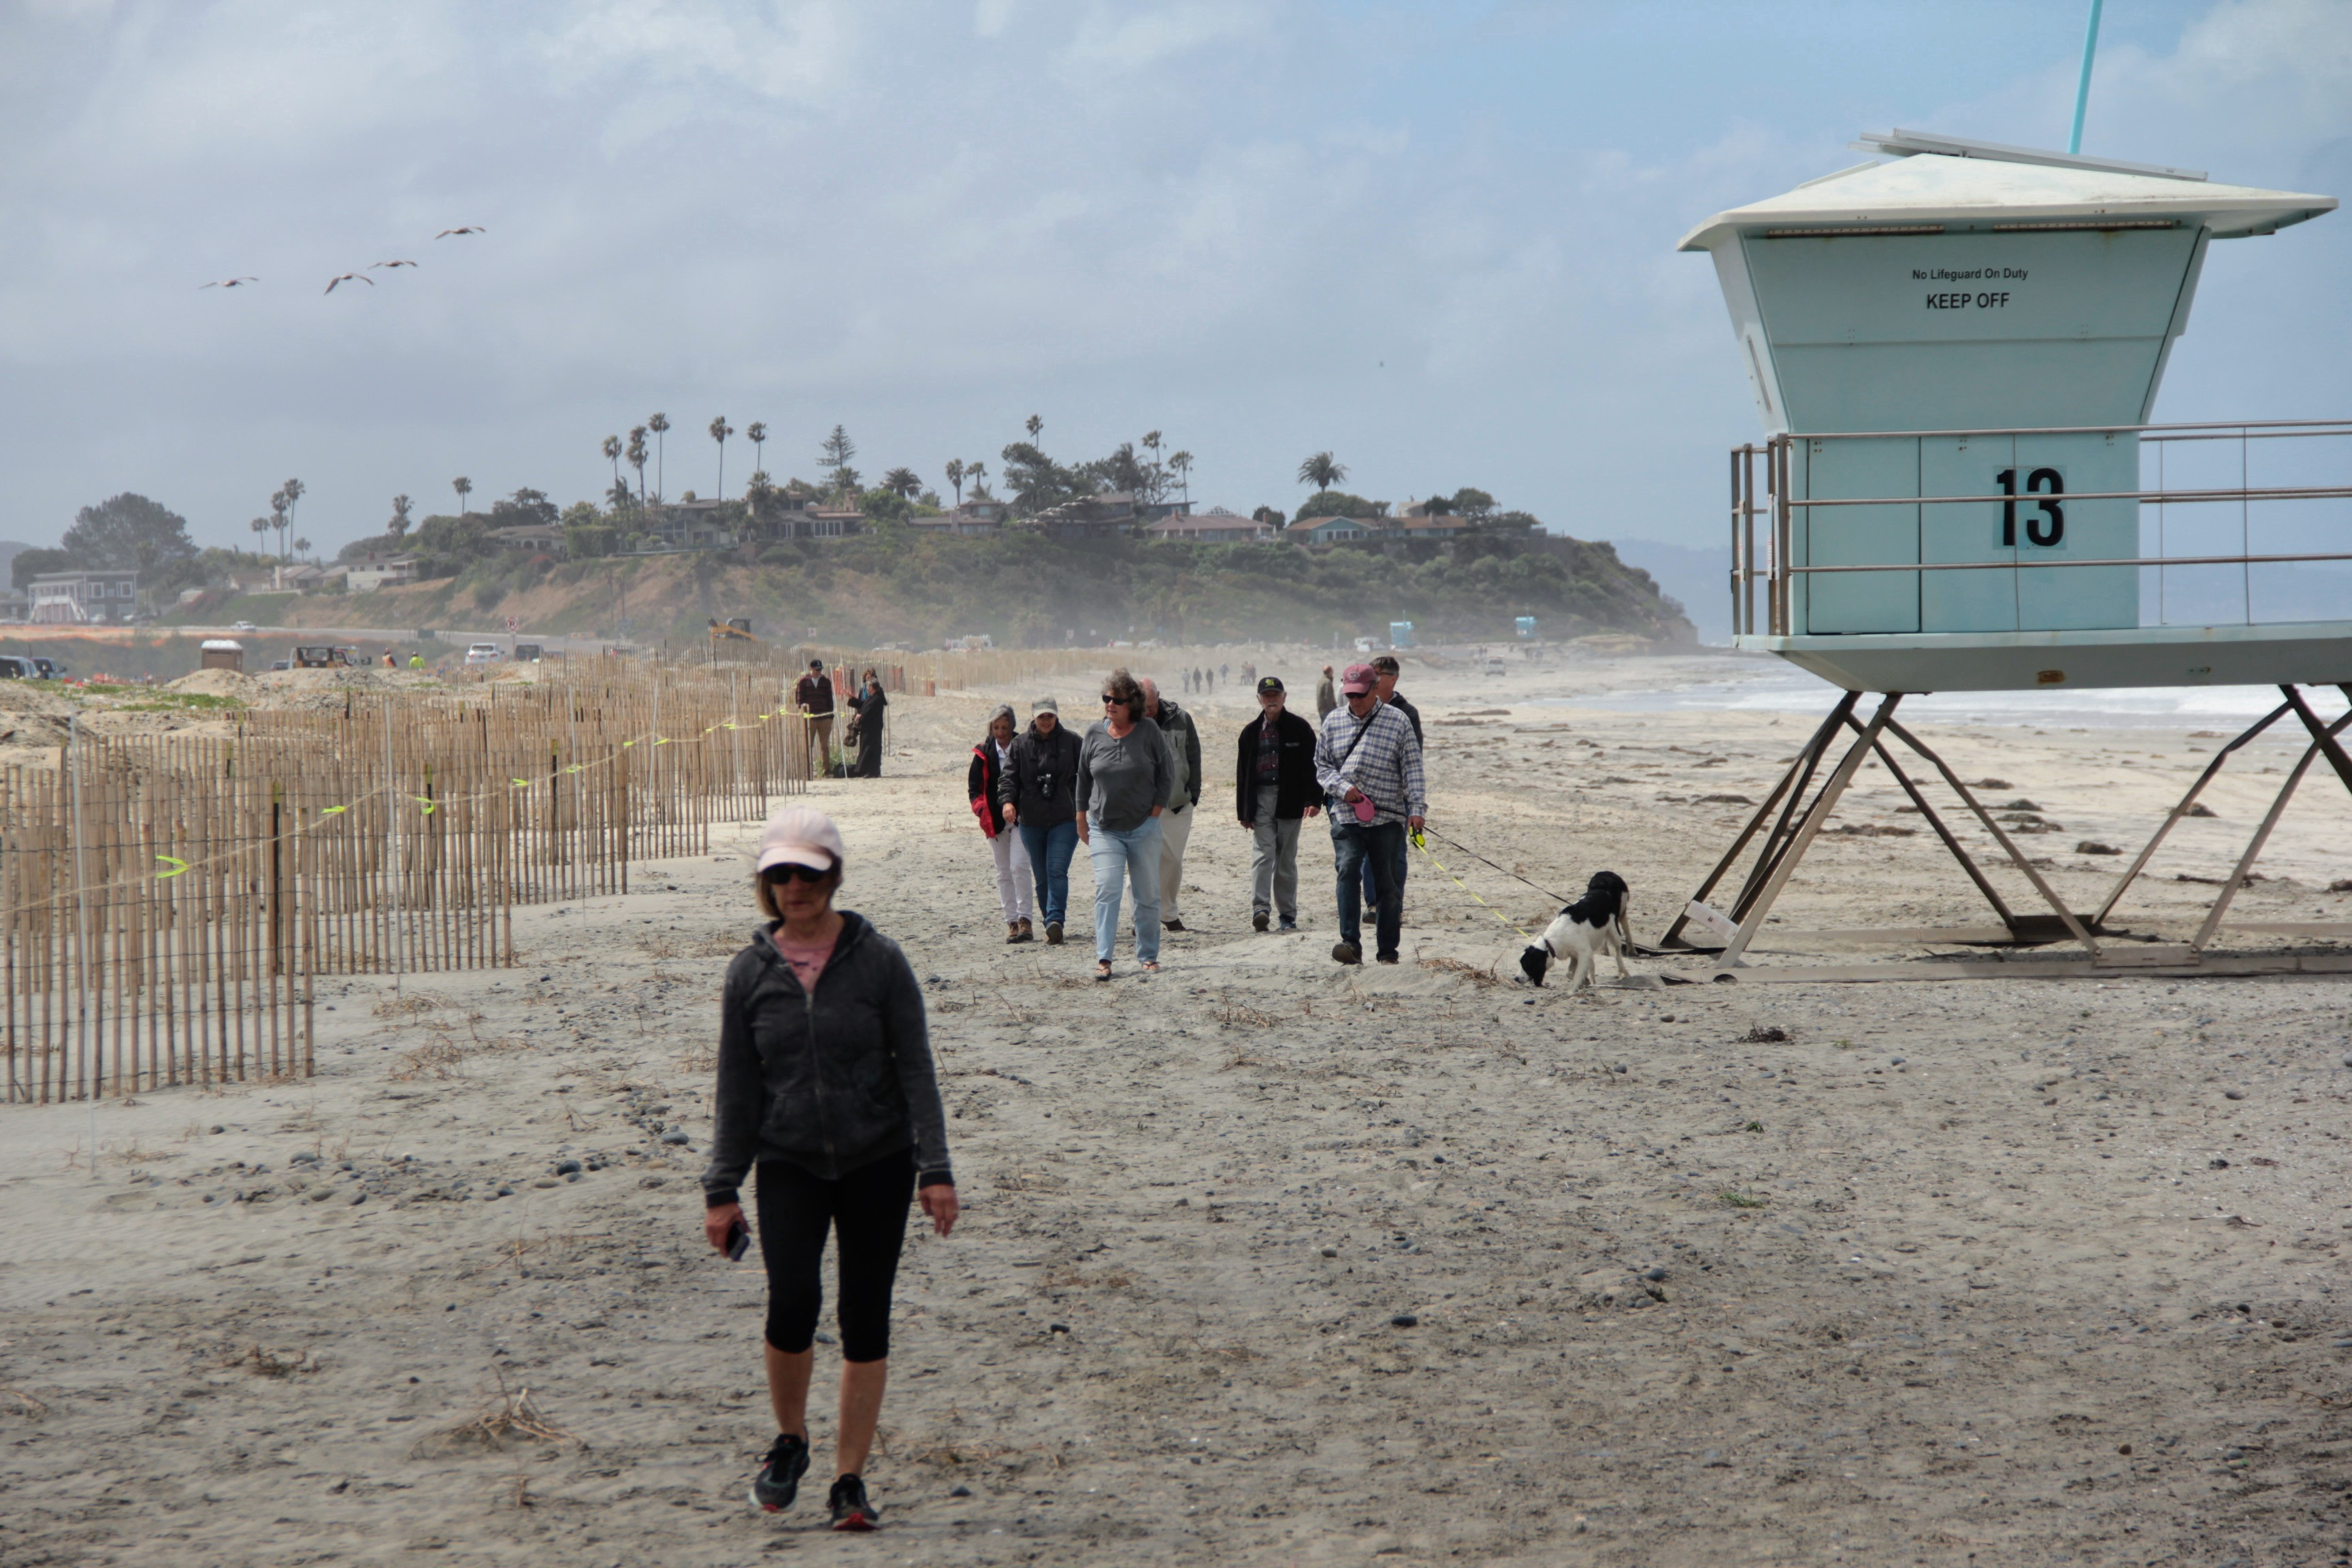 People walking along a beach beside a life guard stand. A dog is stopping to sniff.